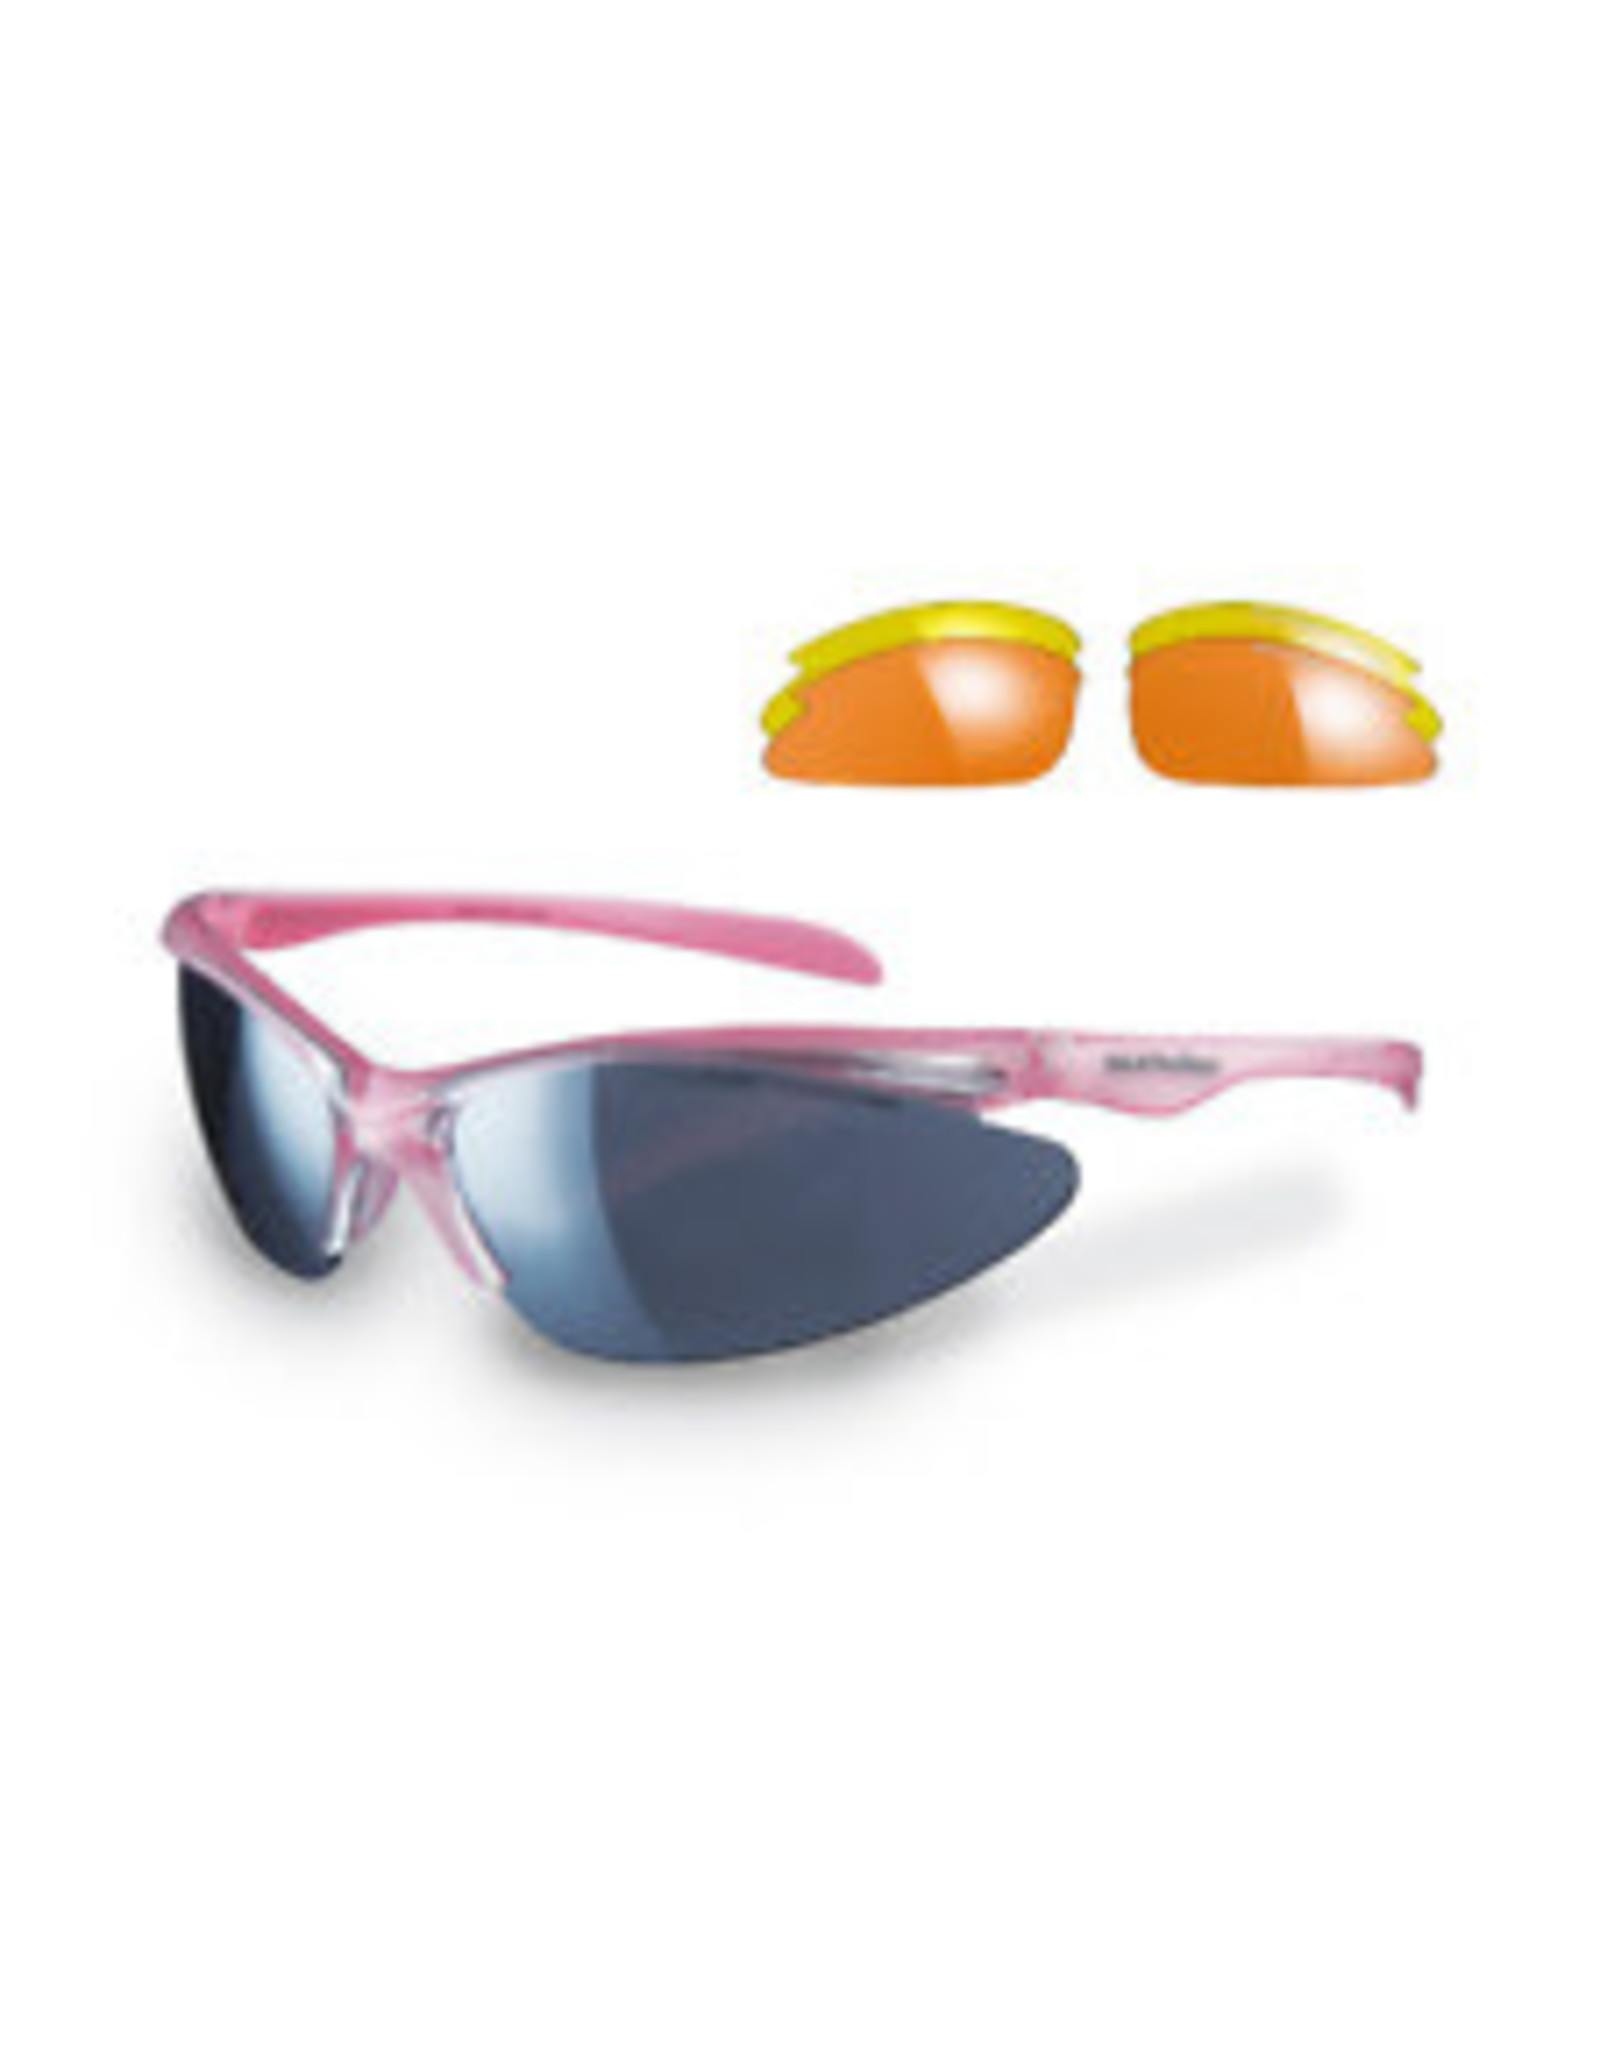 Sunwise Thirst Cycling Sunglasses w/interchangeable lenses